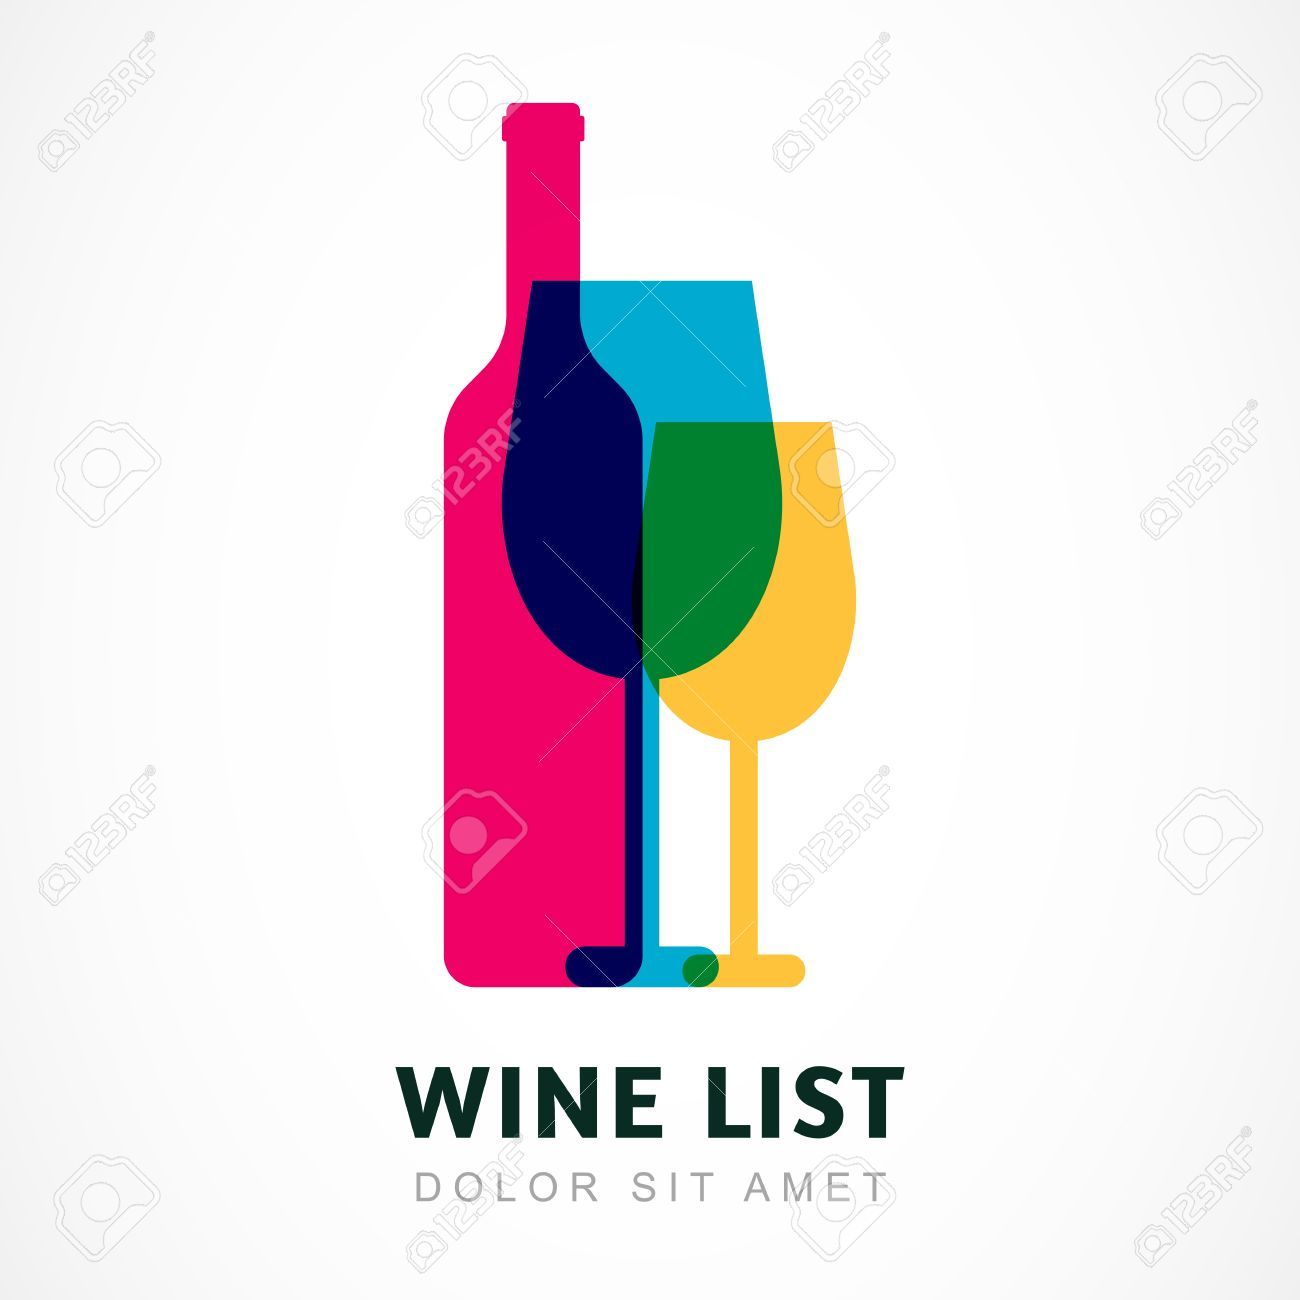 Abstract colorful logo design template. Wine bottle and